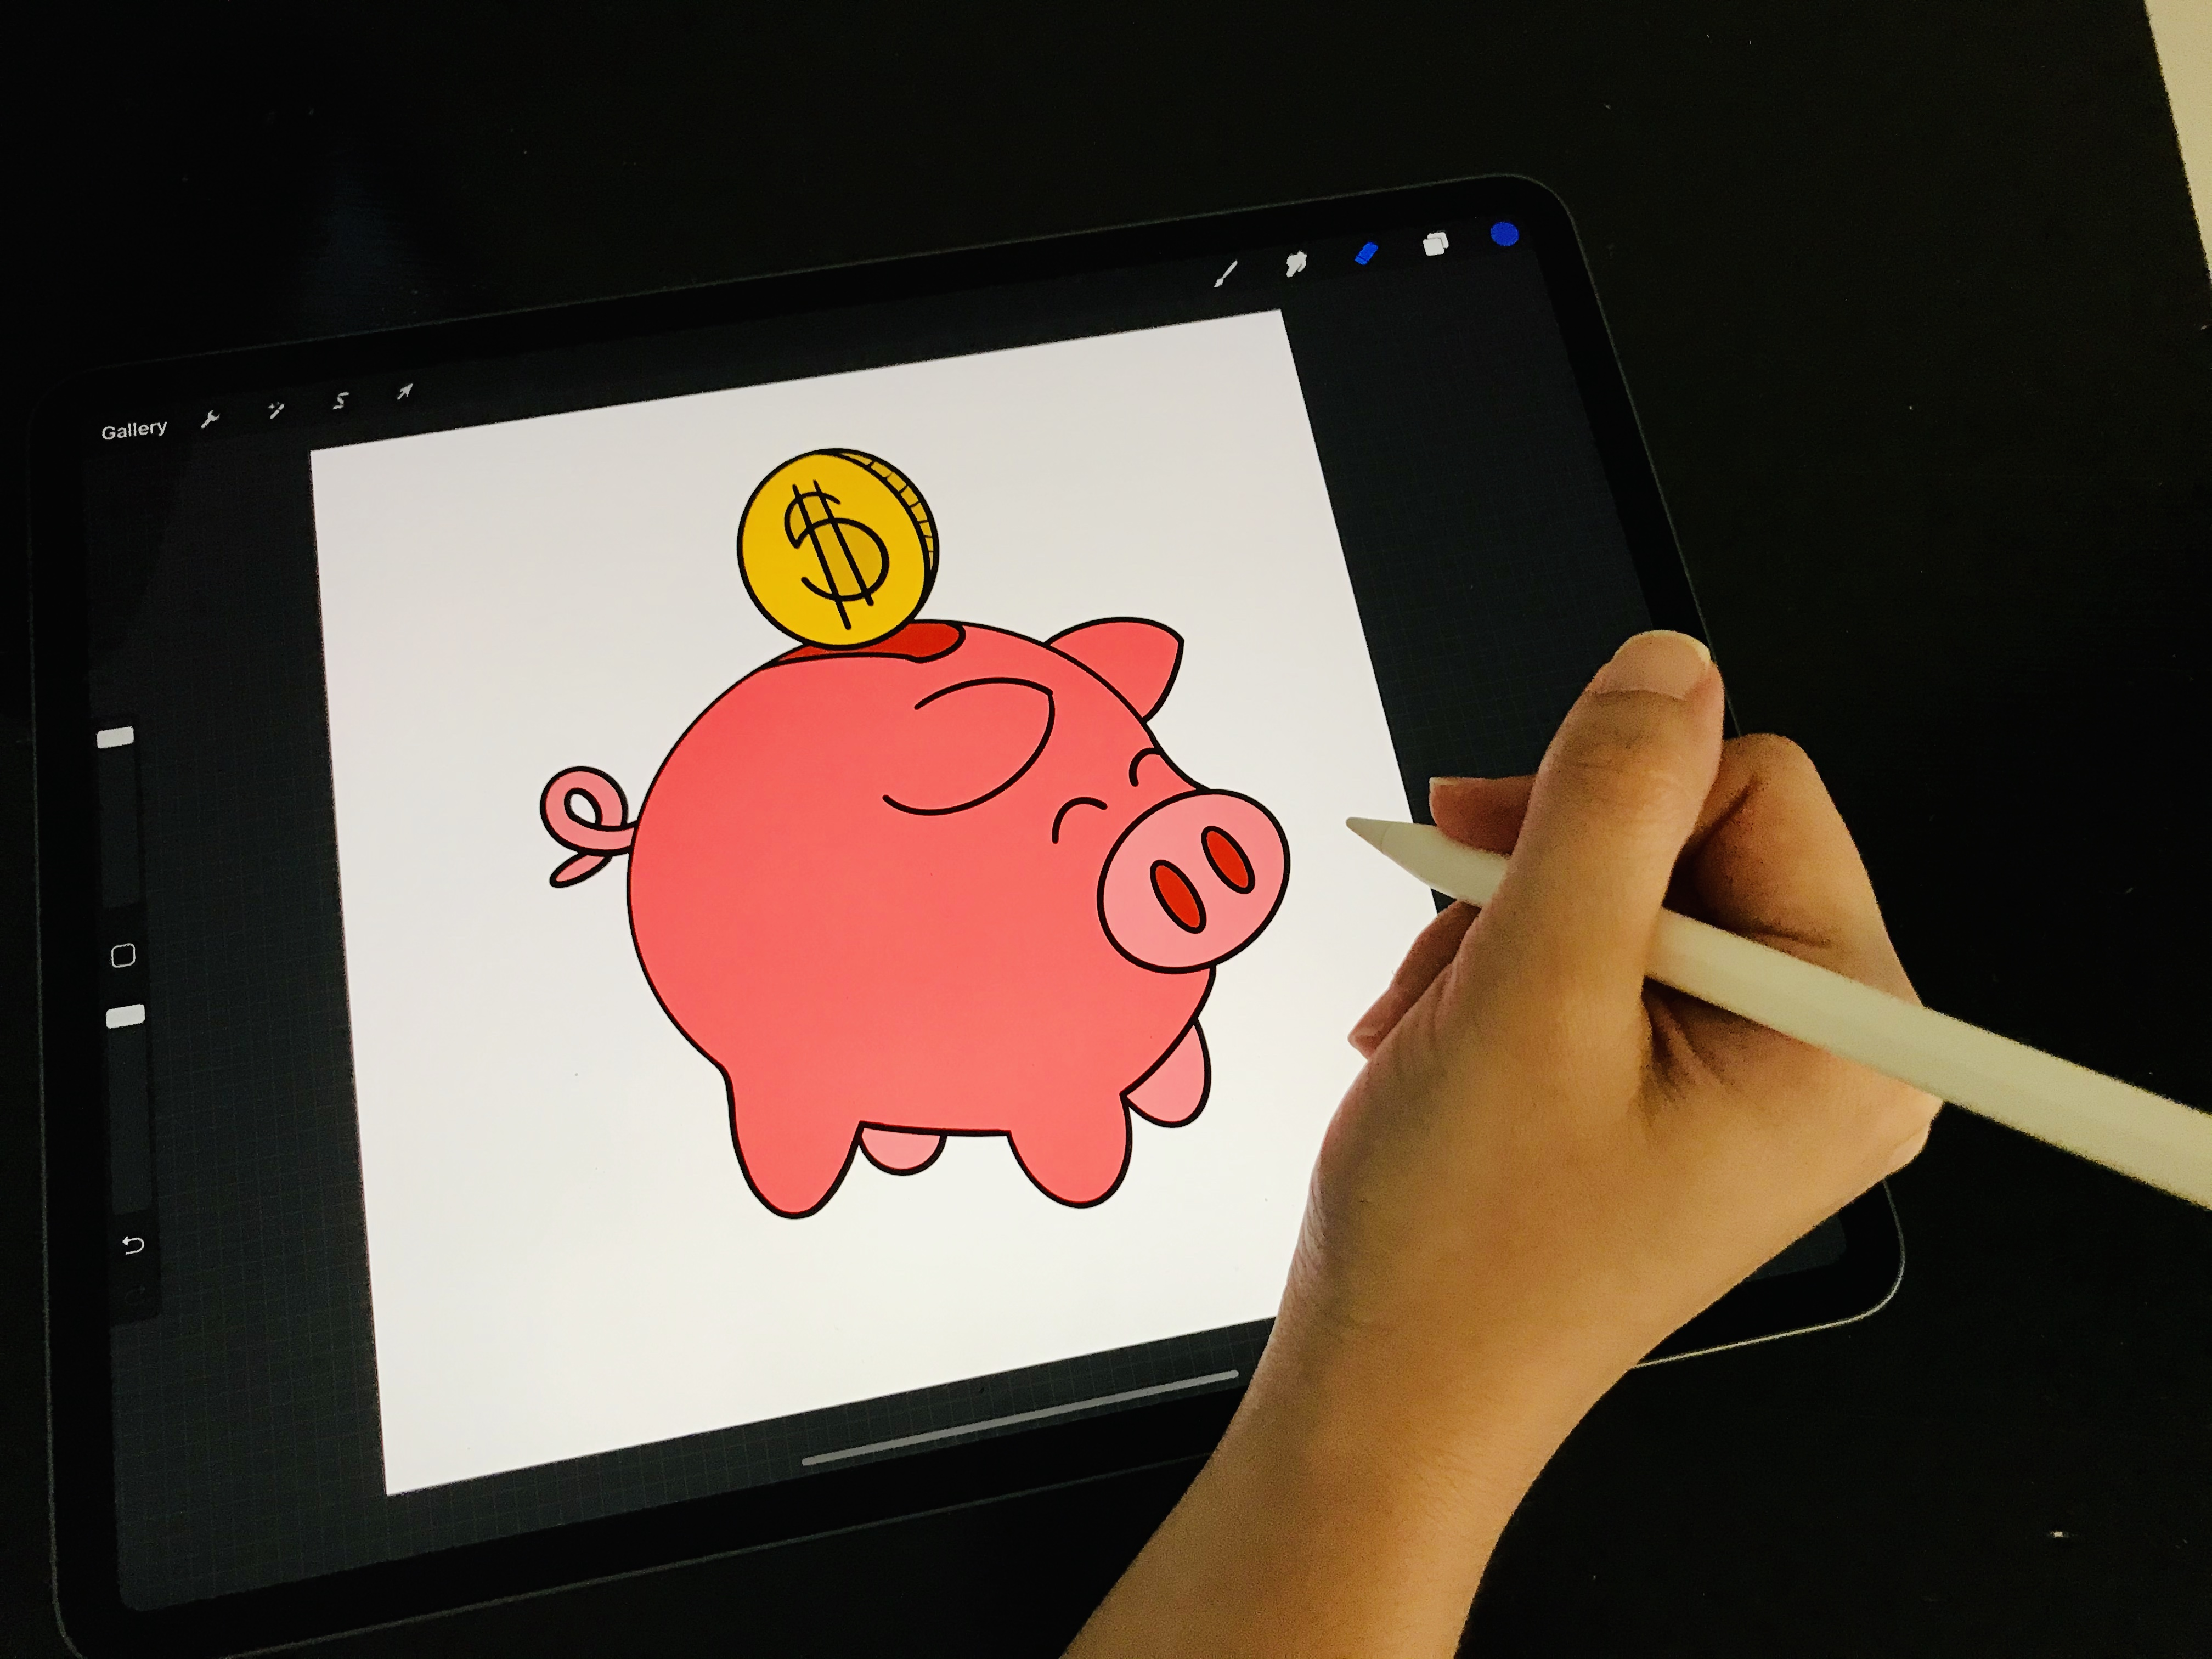 An ipad with a picture of a cartoon piggy bank and golden coin being inserted into it.